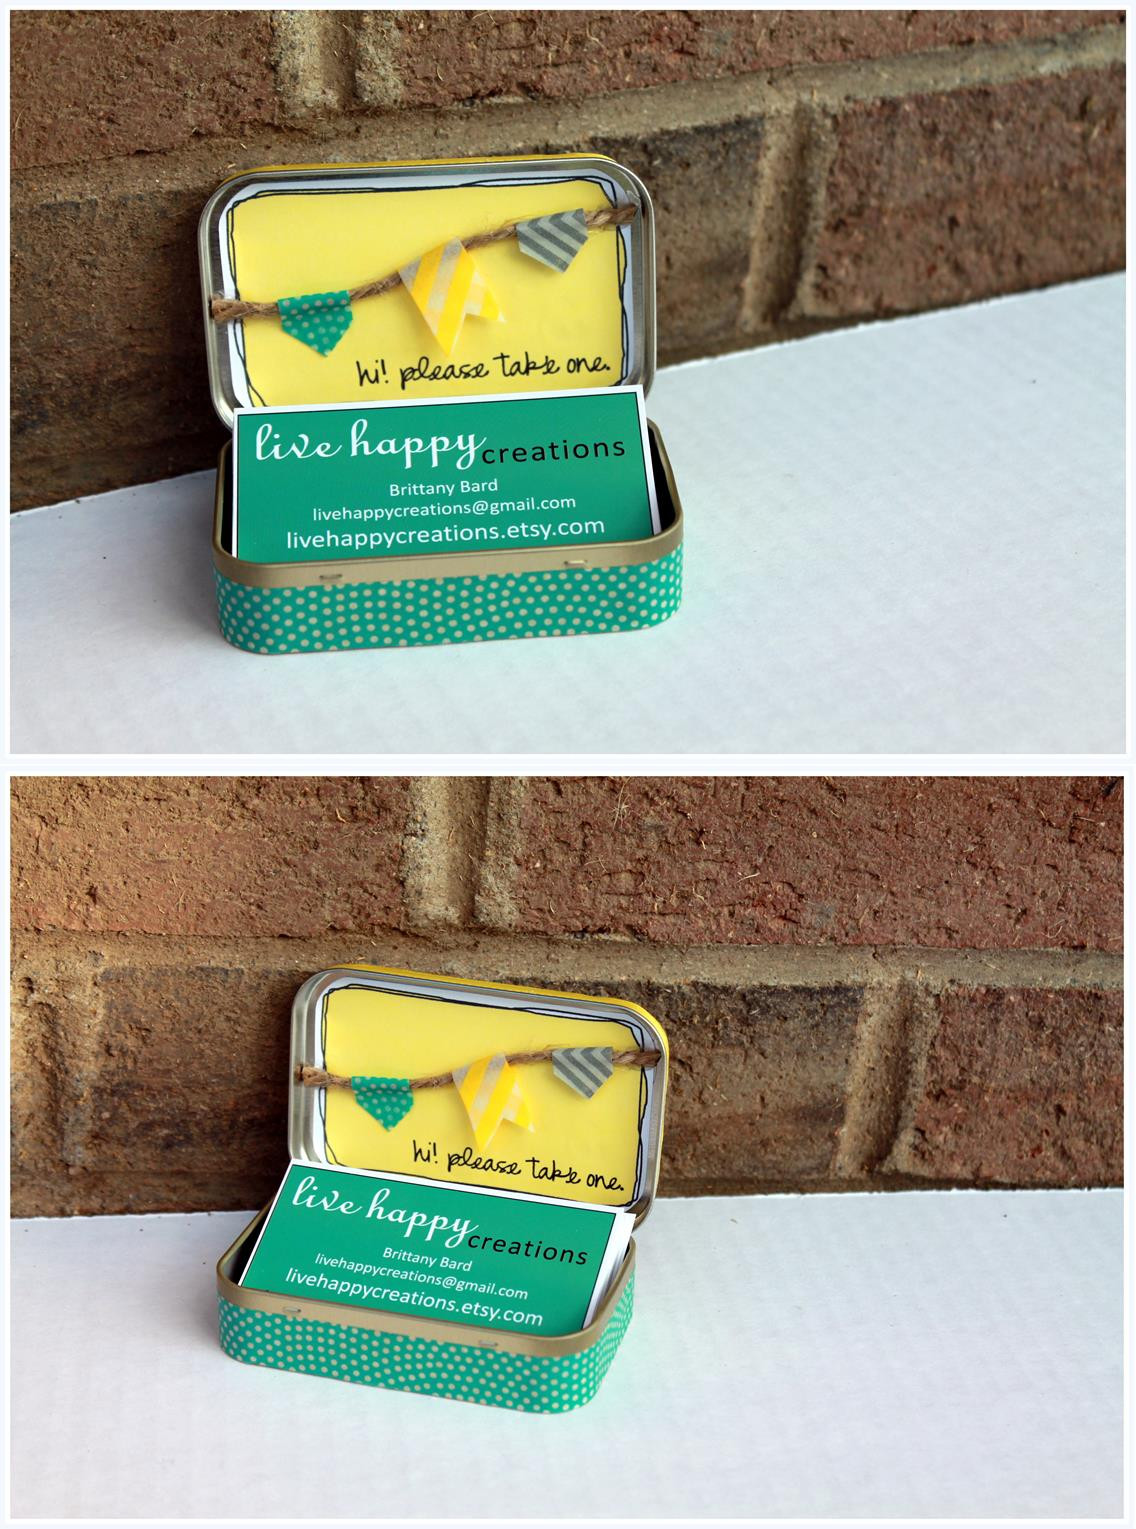 Best ideas about DIY Business Card Holder . Save or Pin diy business card holder – live happy Now.